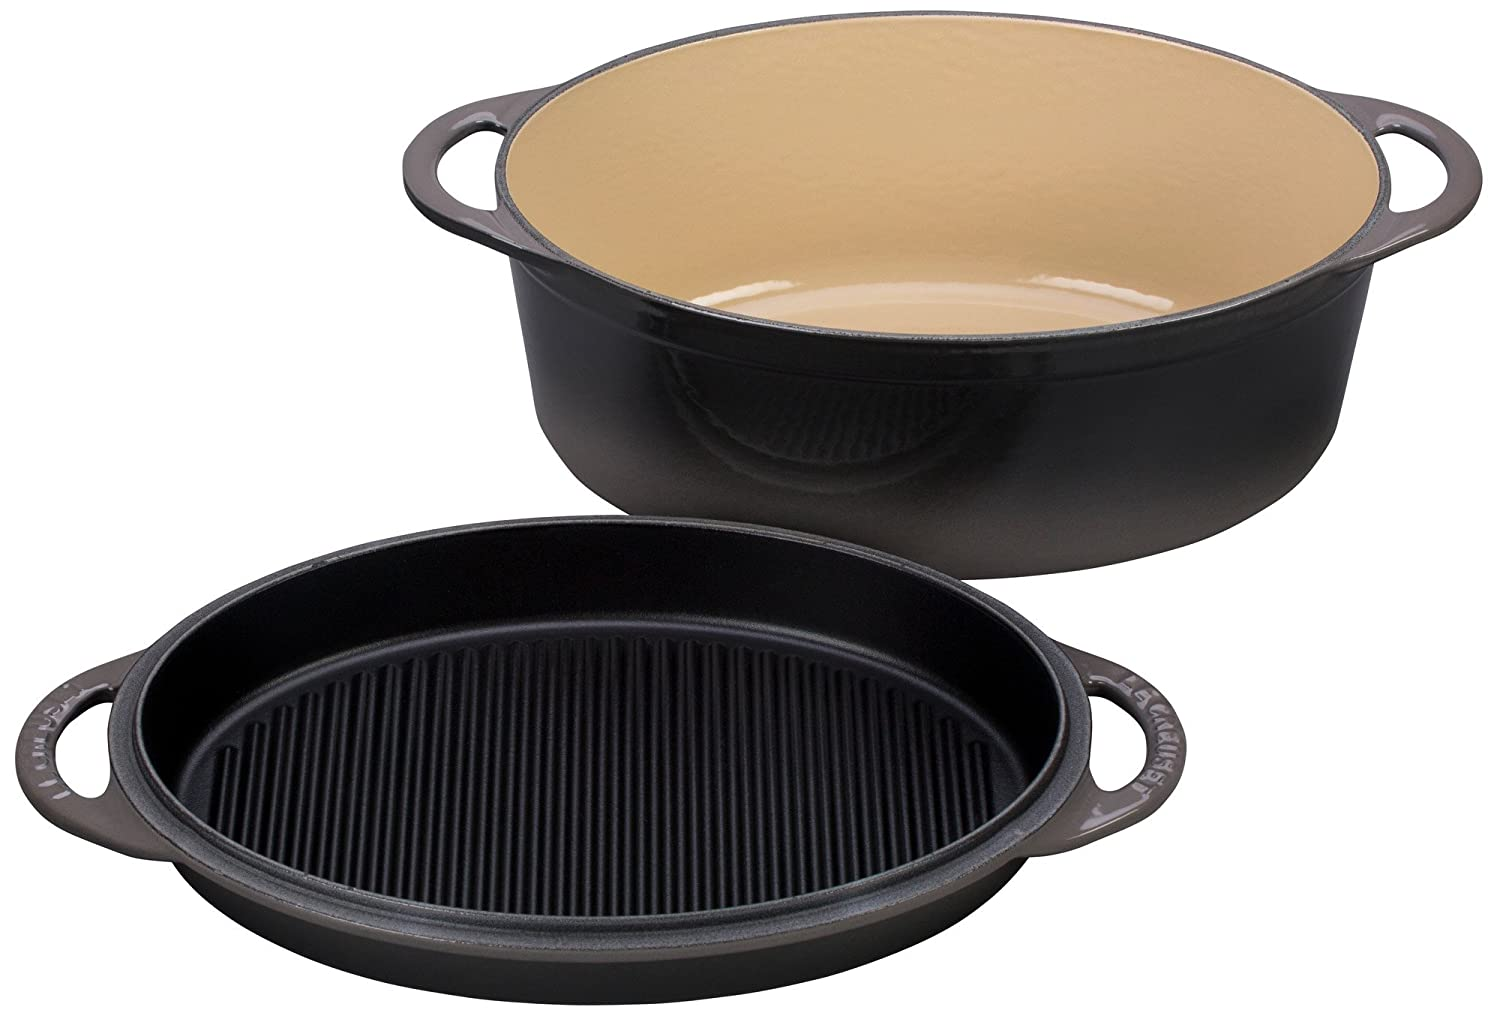 Le Creuset Cast Iron Oval Oven with Reversible Grill Pan Lid, 4 3/4 quart, Oyster